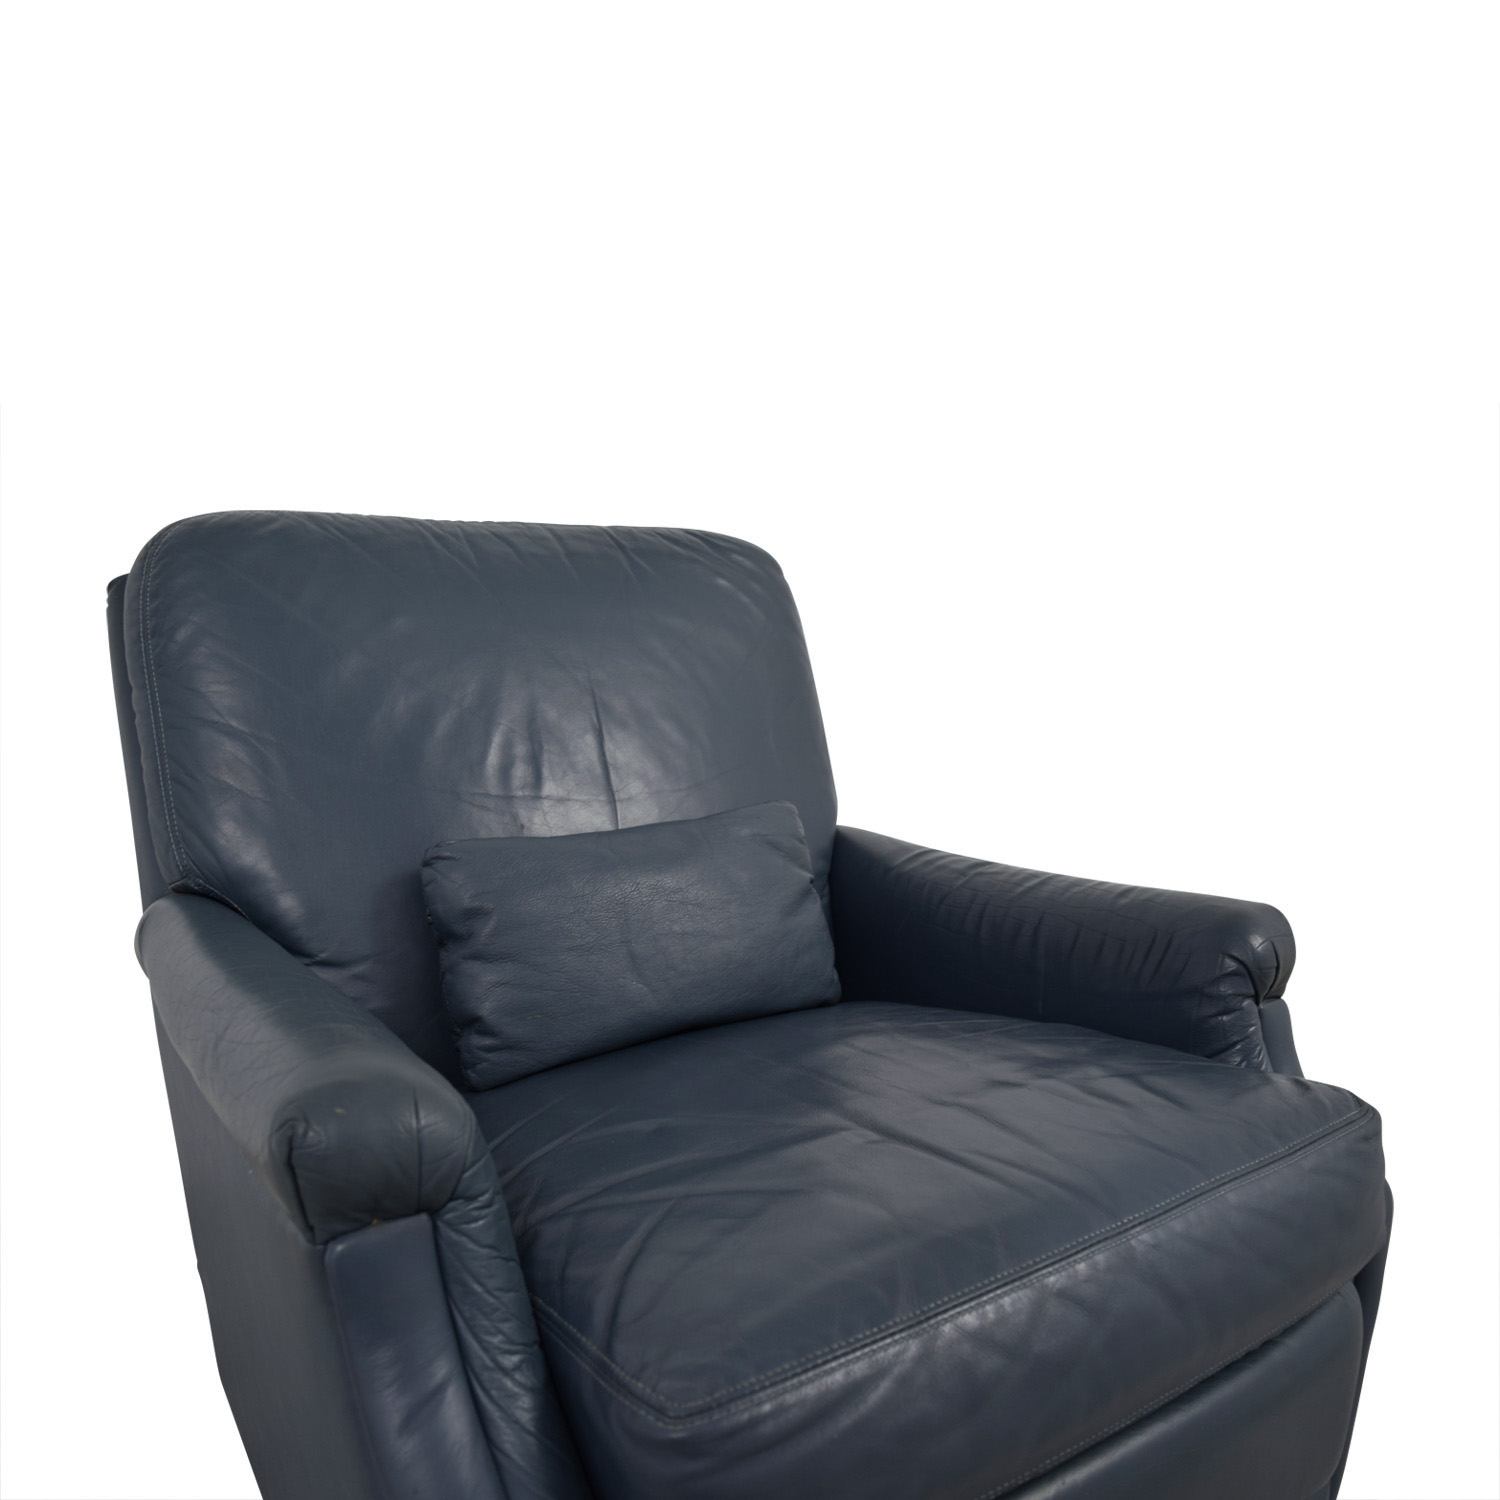 Barcalounger Barcalounger Manual Reclining Arm Chair nj